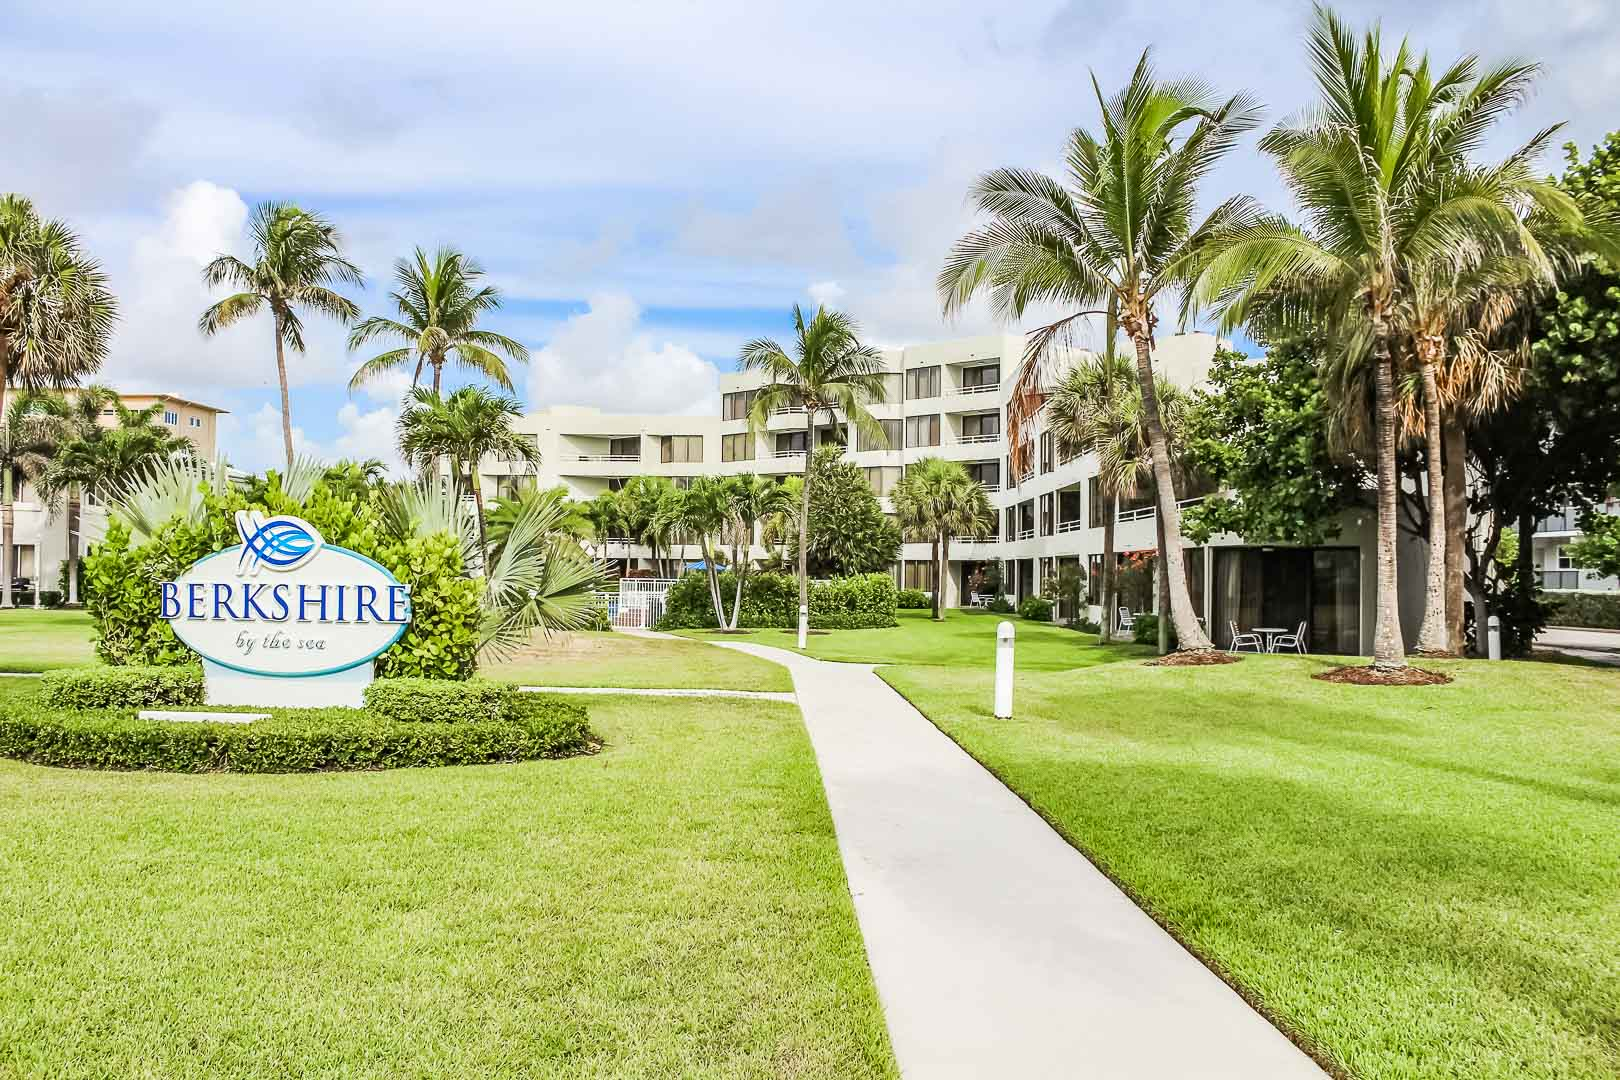 An inviting resort entrance at VRI's Berkshire by the Sea in Florida.